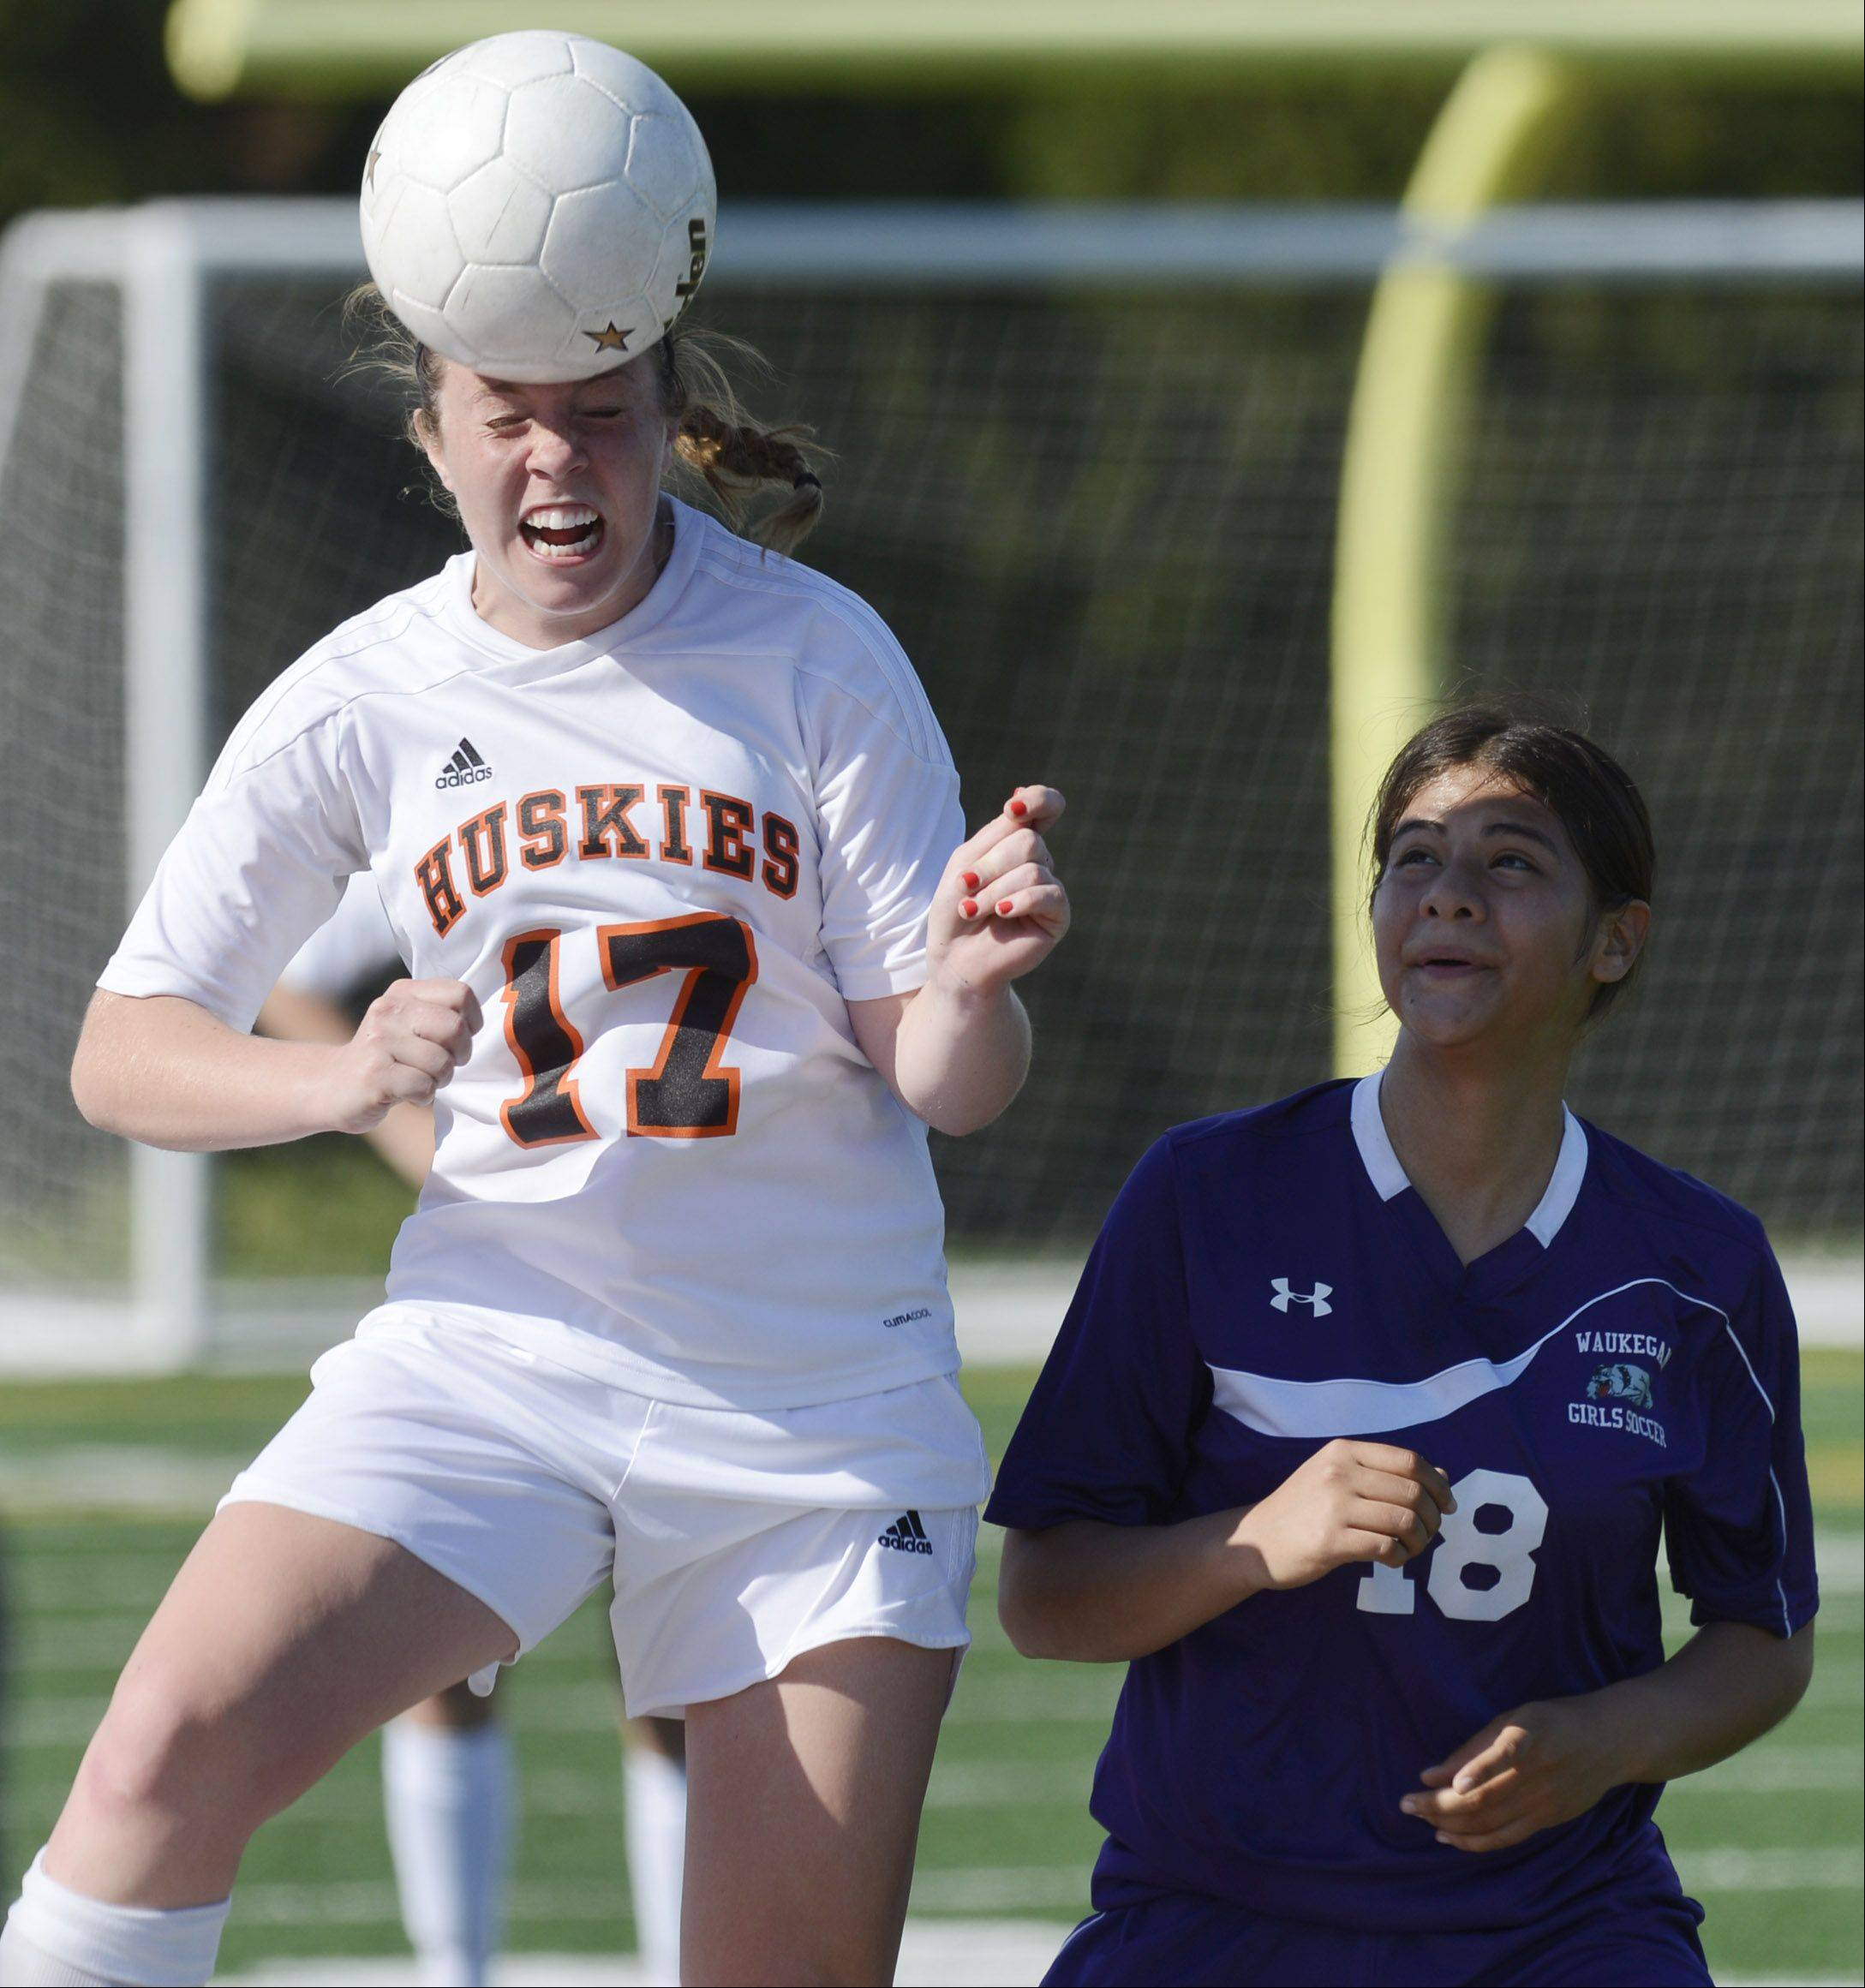 Hersey's Lauren Gierman, left, leaps for a header next to Waukegan's Jasmine Res.